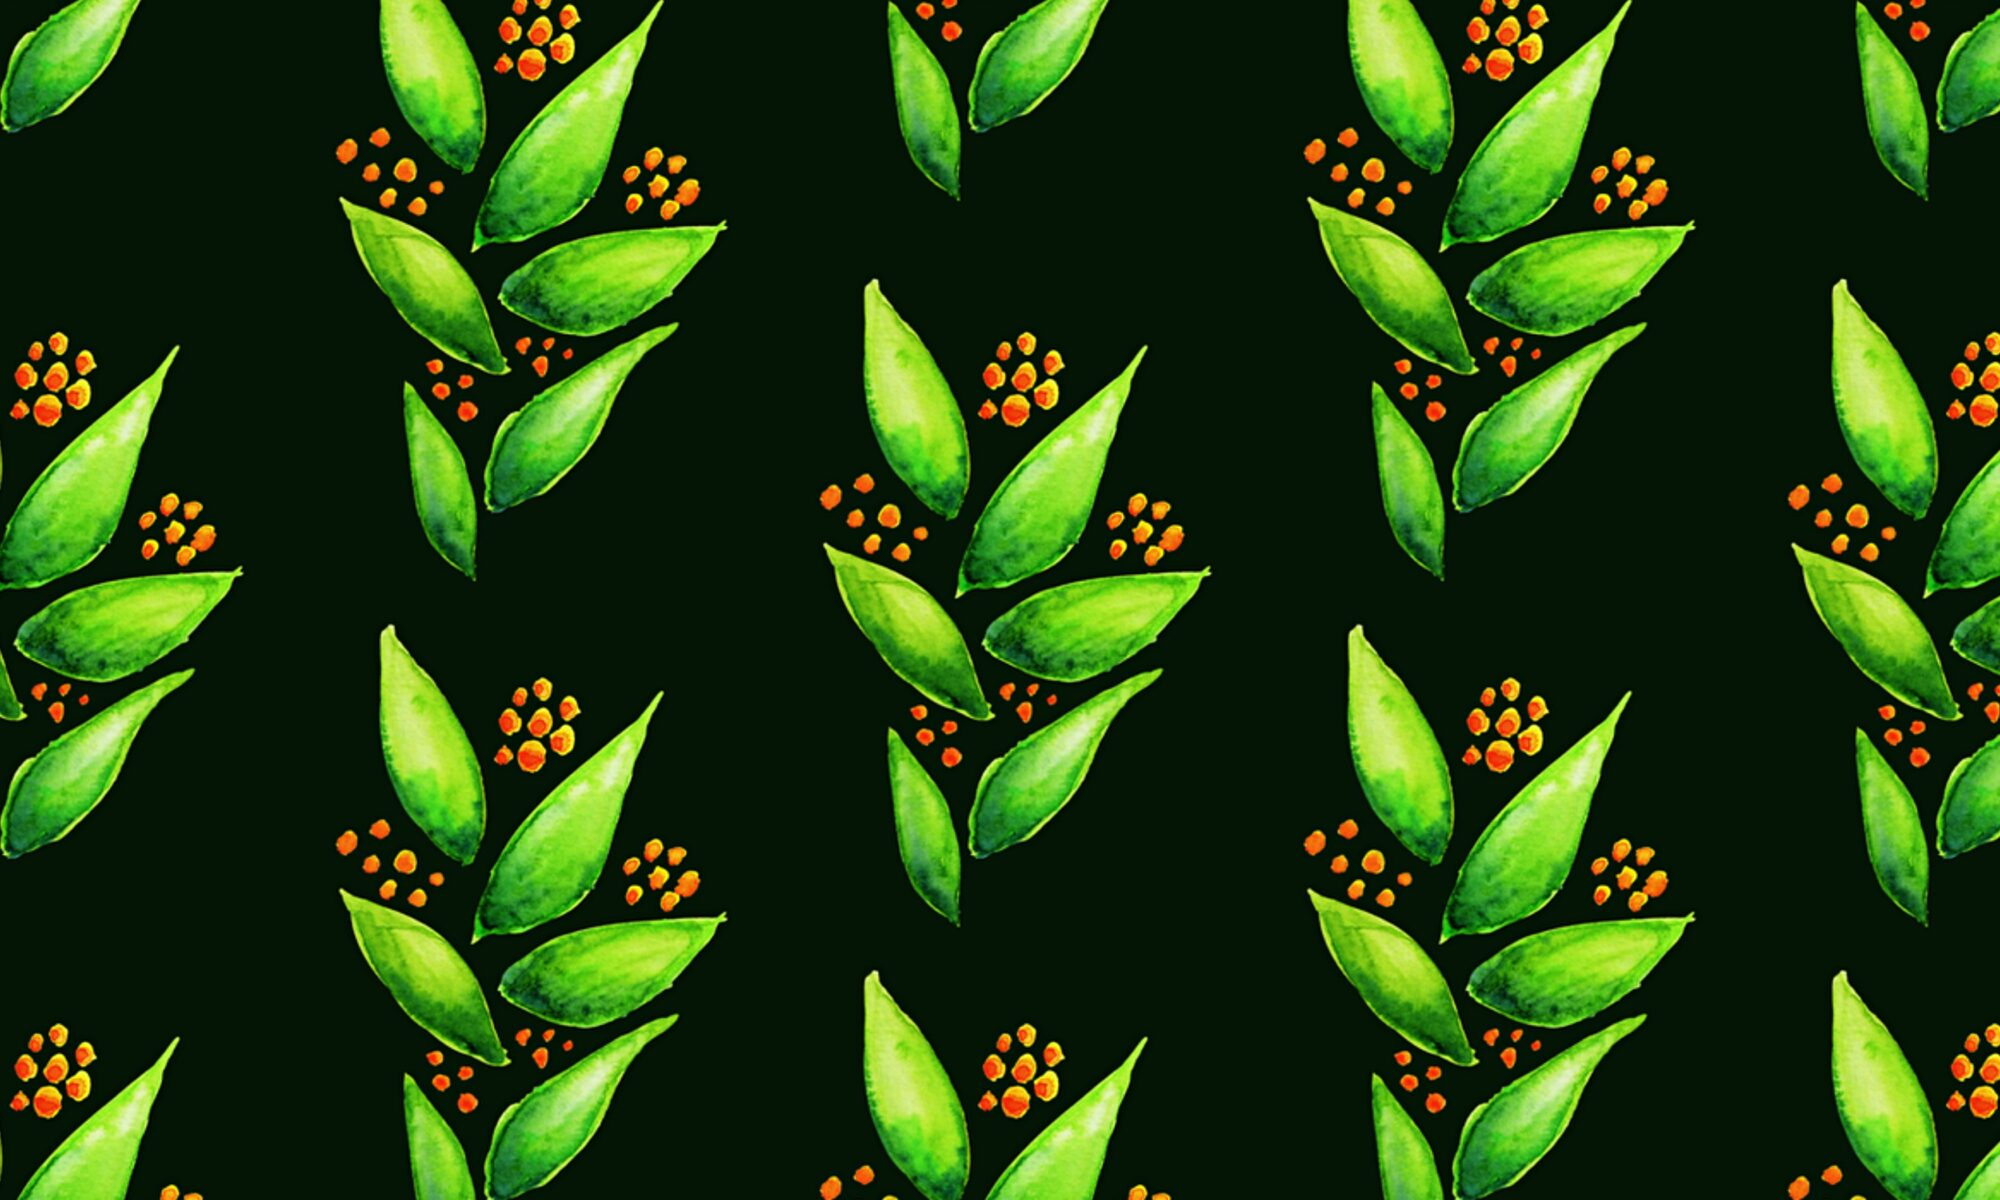 Abstract green plant with orange berries watercolor pattern